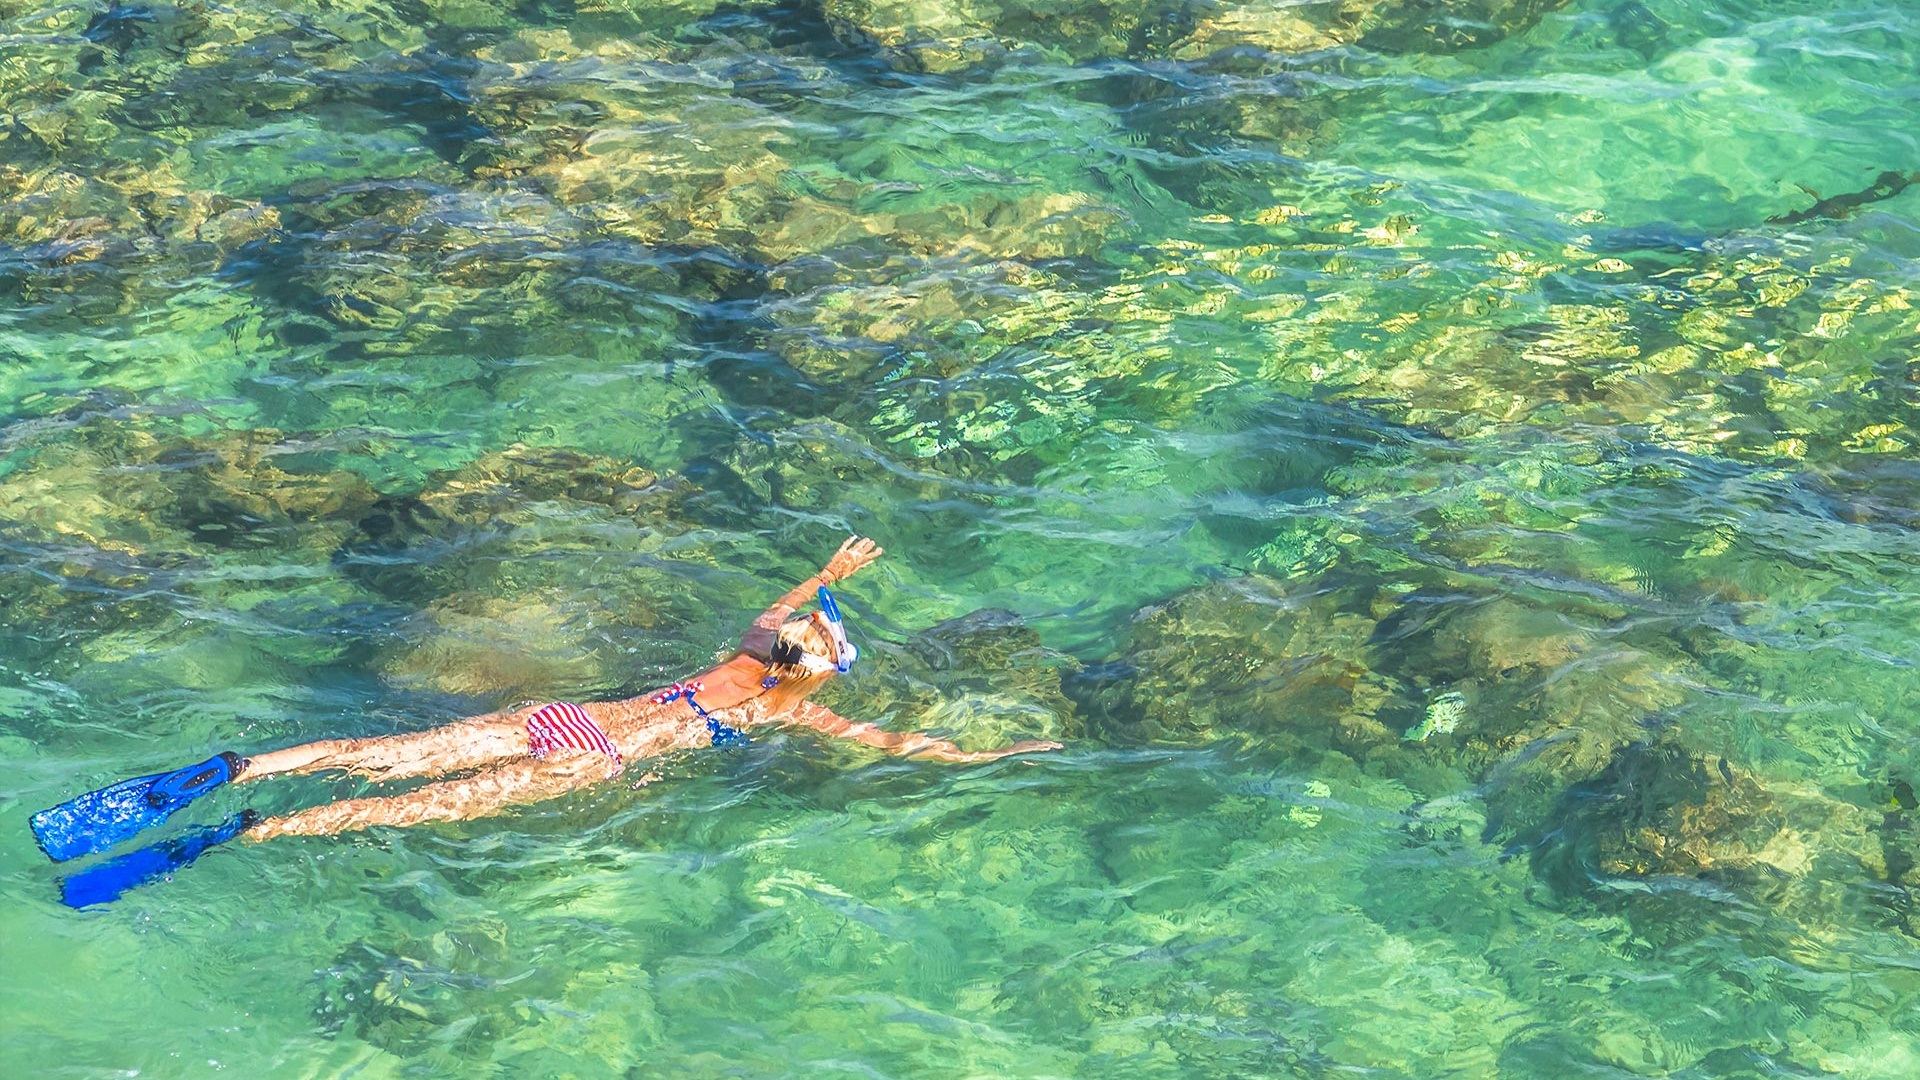 Snorkelling in clear waters